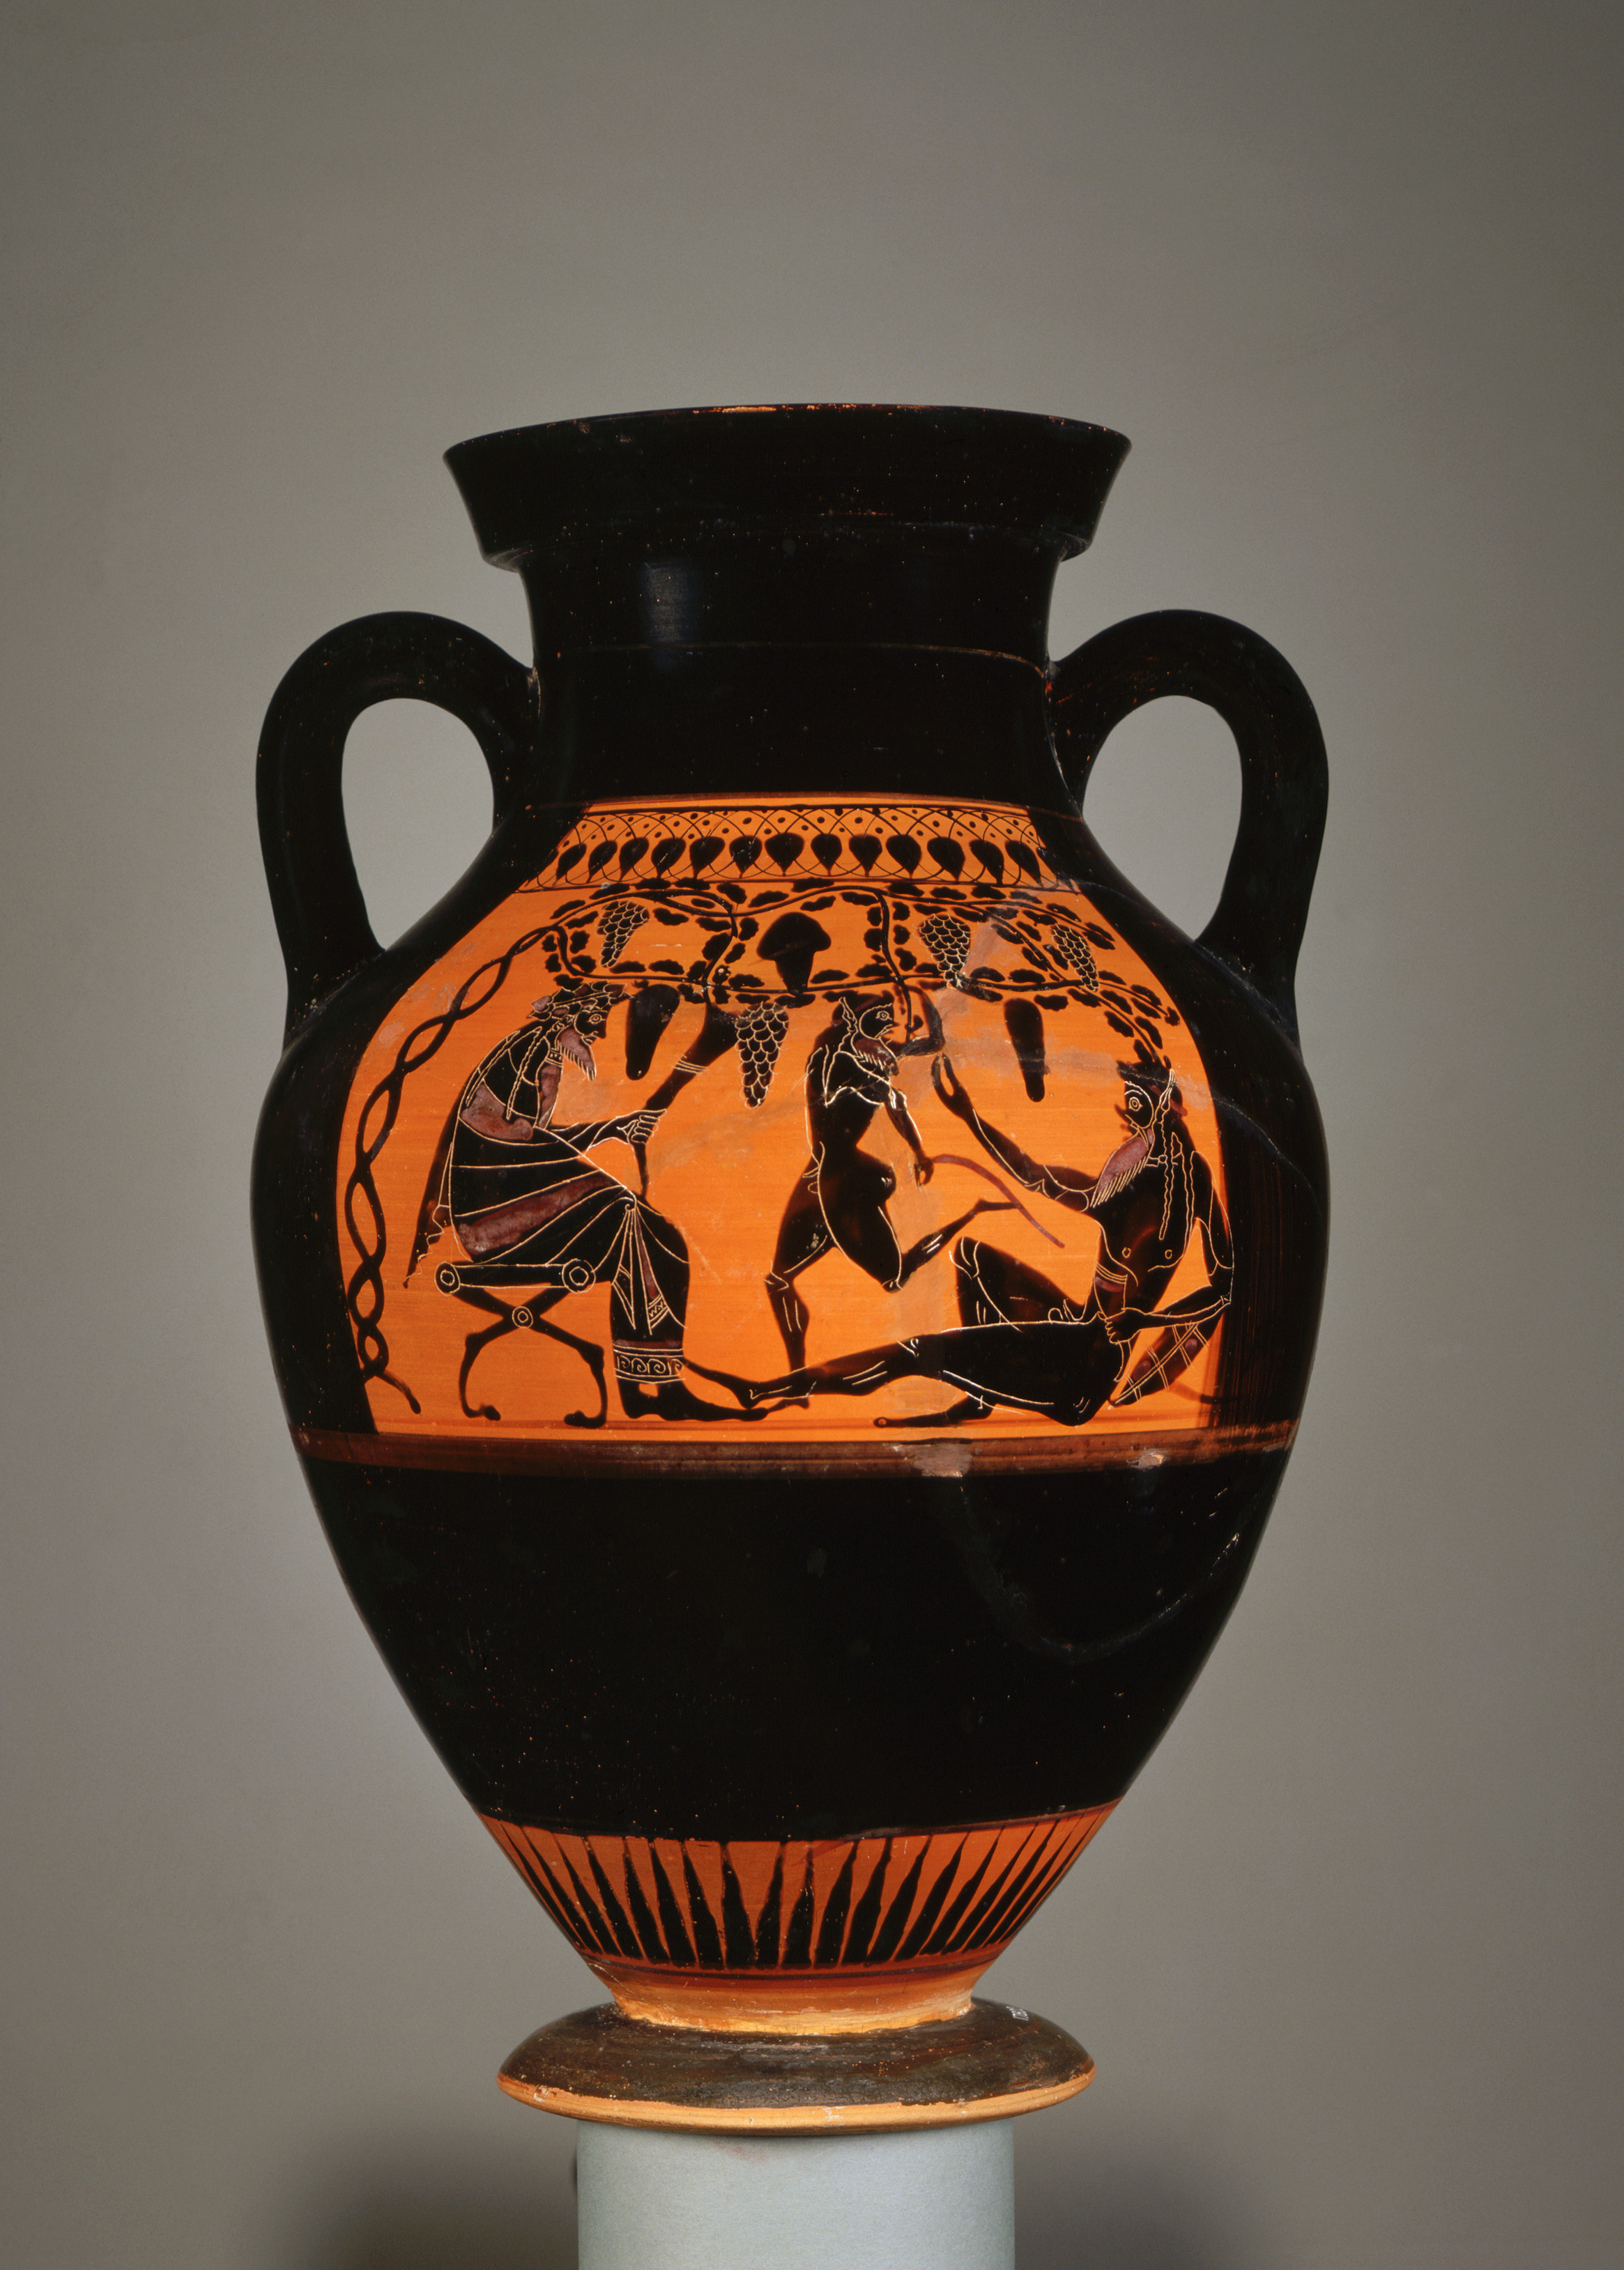 146367 sparta pictures ancient greece history sparta spartan amphora vases ancient greece reviewsmspy